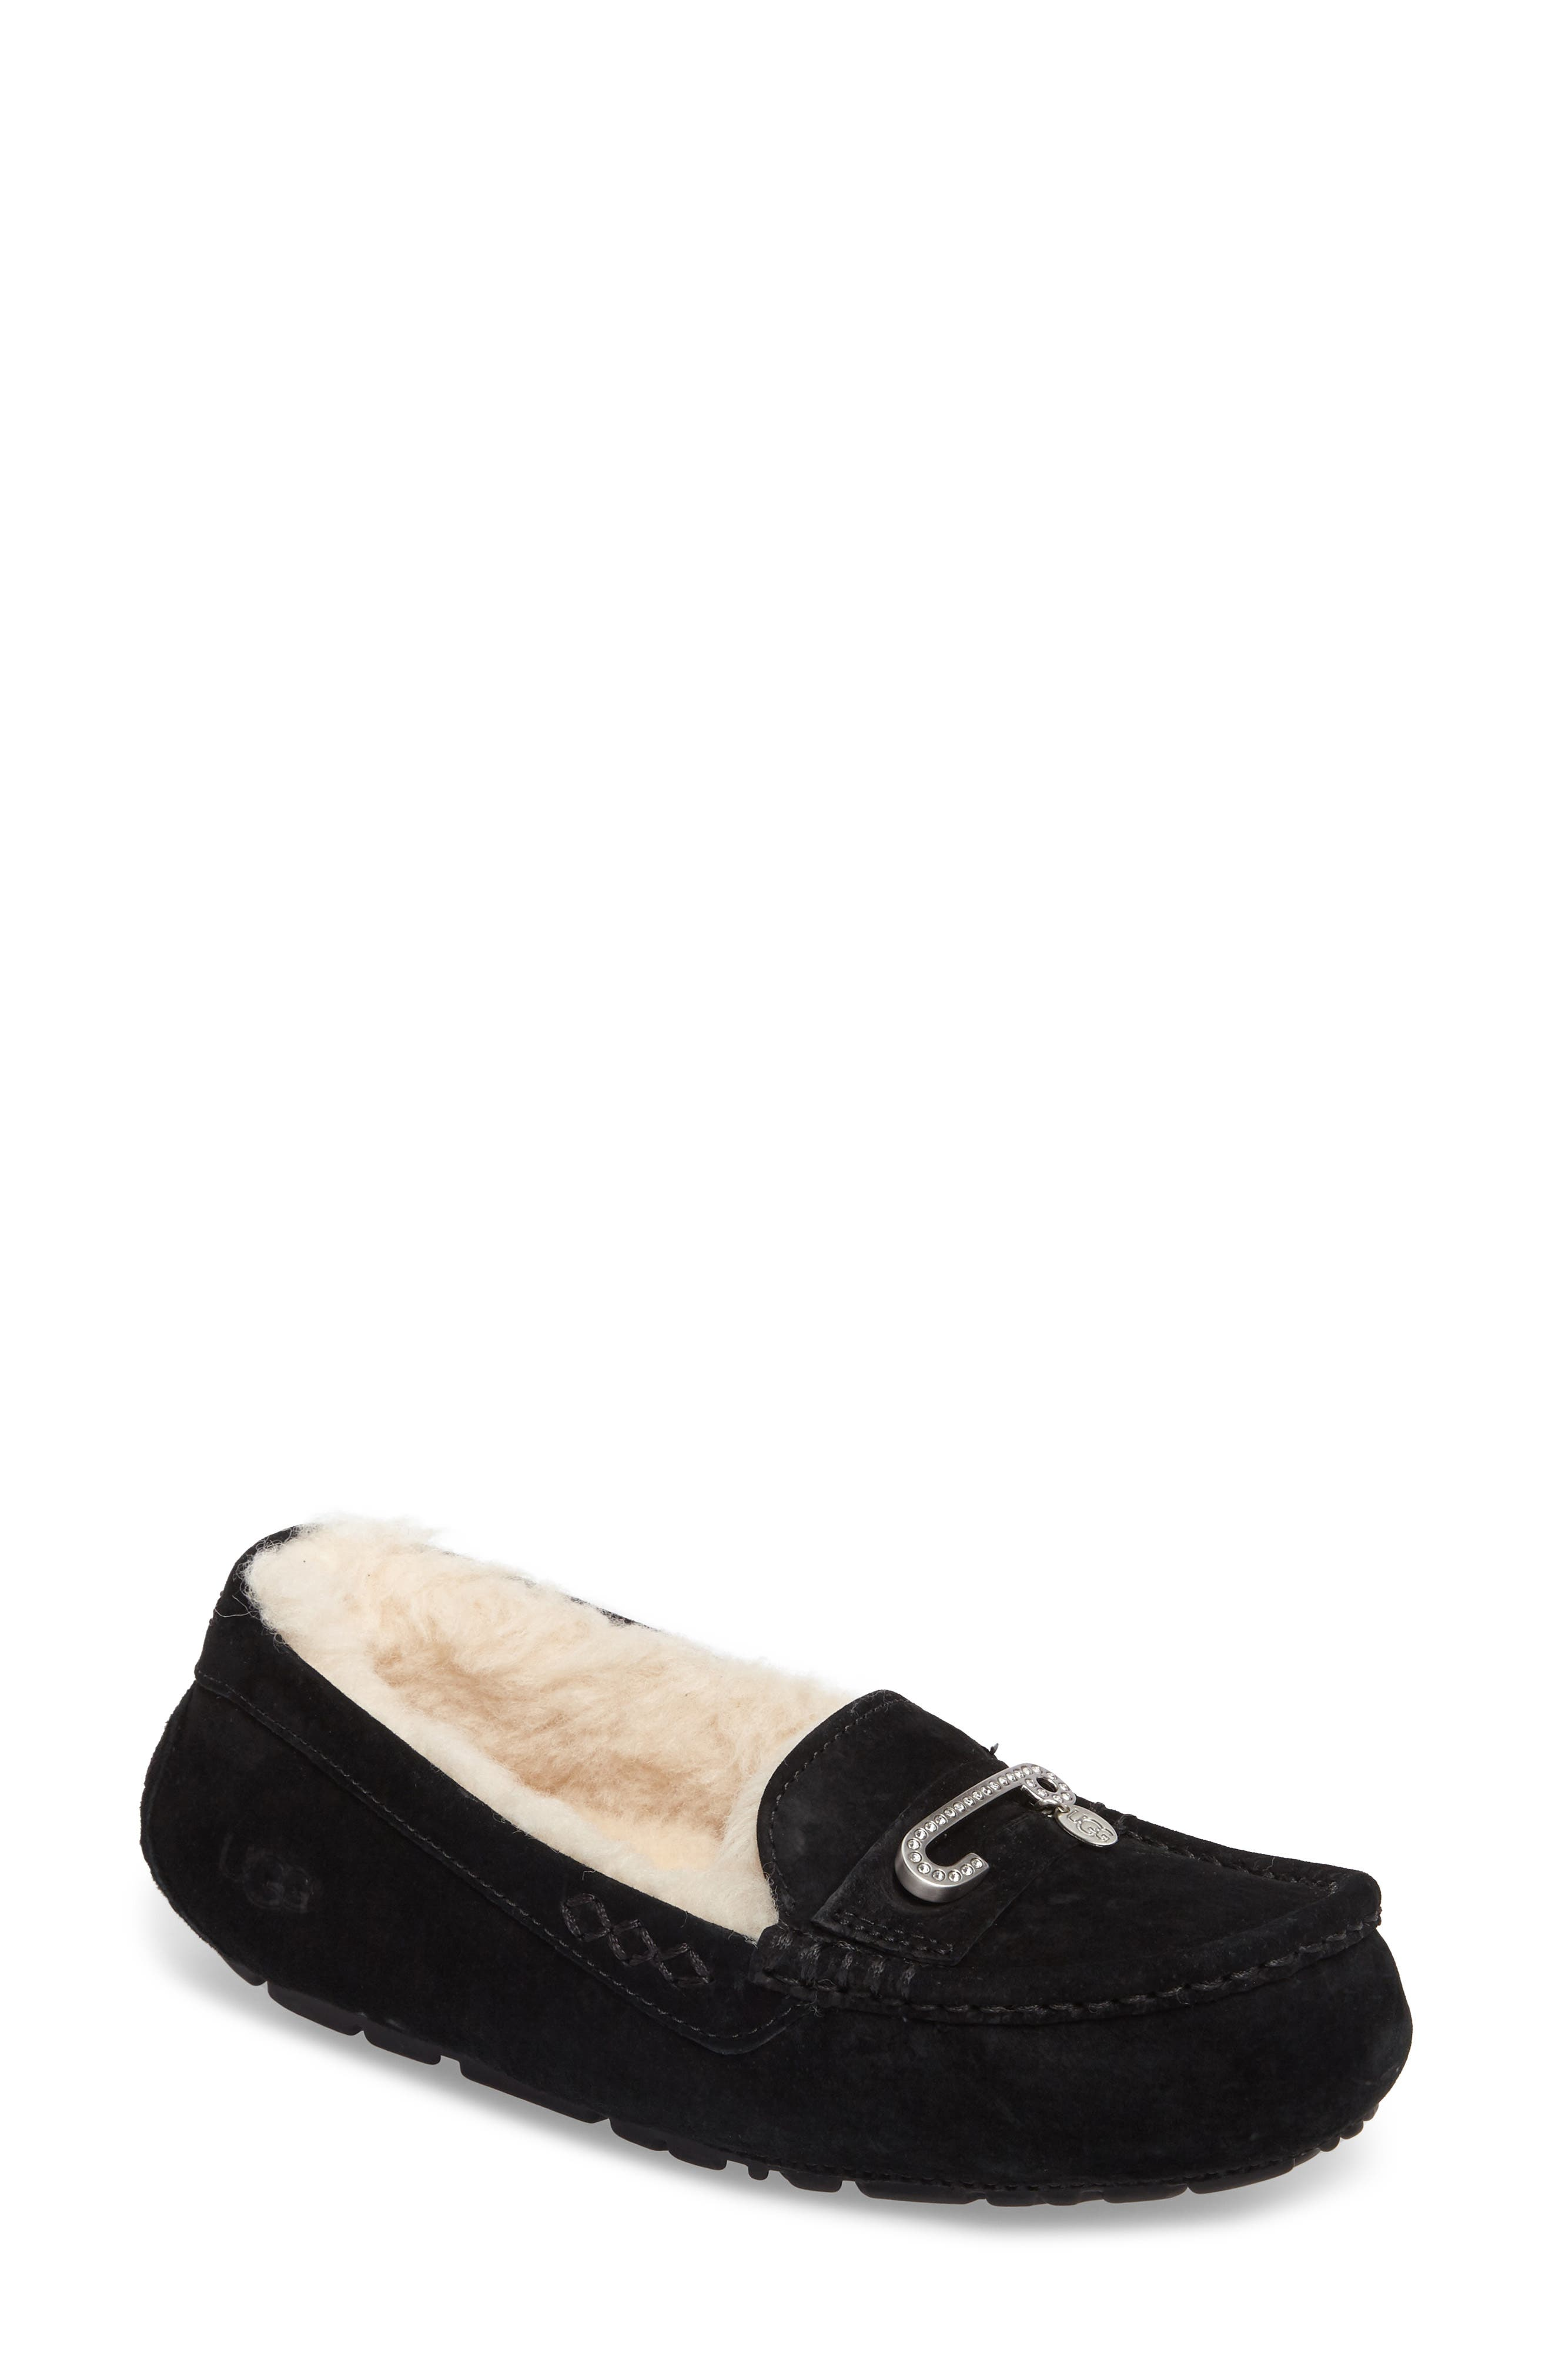 Florencia Water Resistant Silkee<sup>™</sup> Suede Slipper,                             Main thumbnail 1, color,                             001